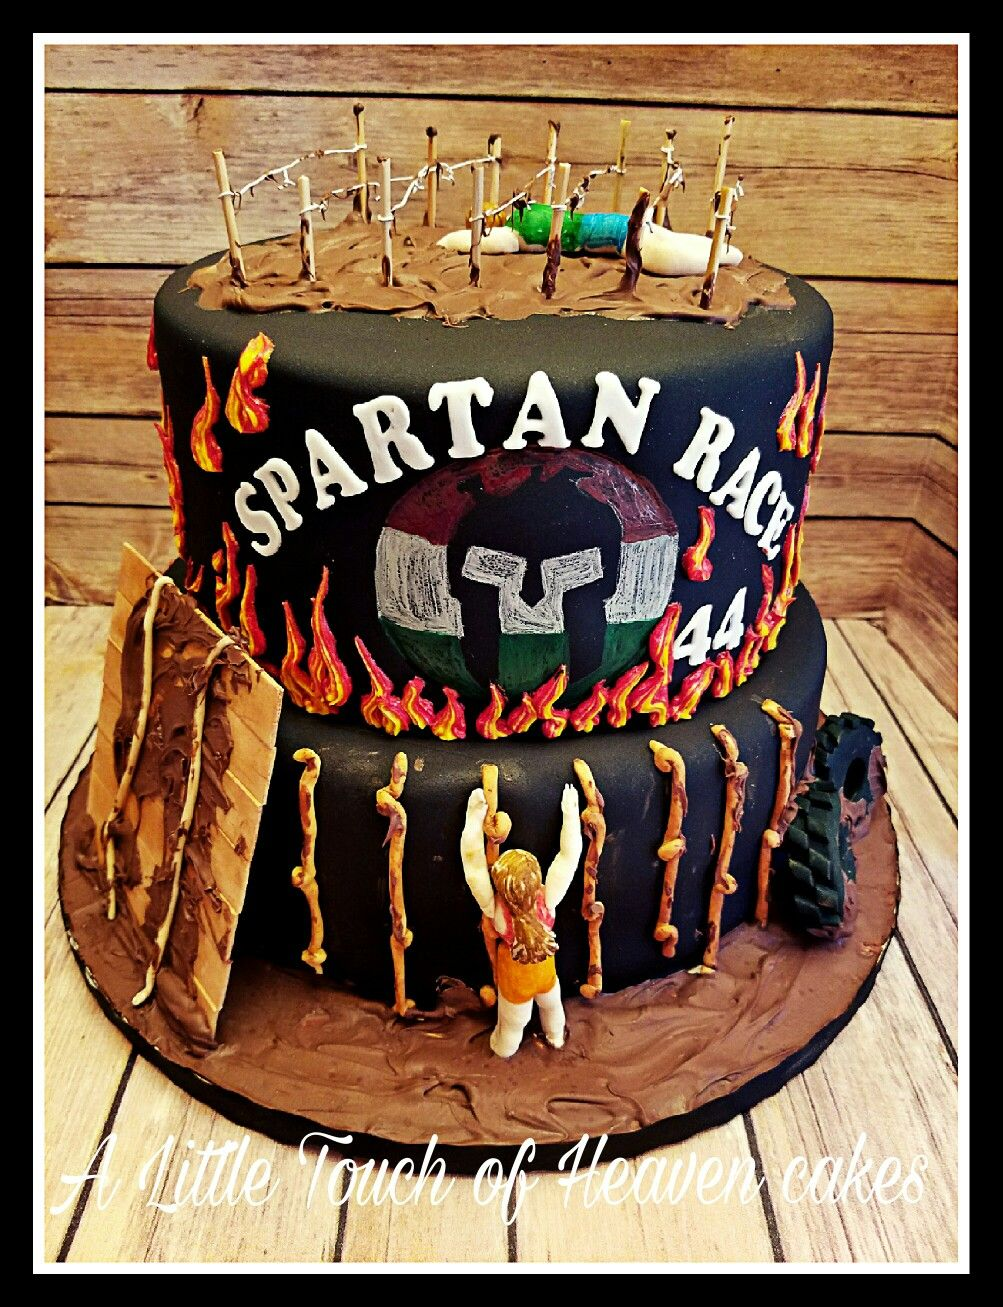 Spartan race birthday cake My Cake Creations A Little Touch